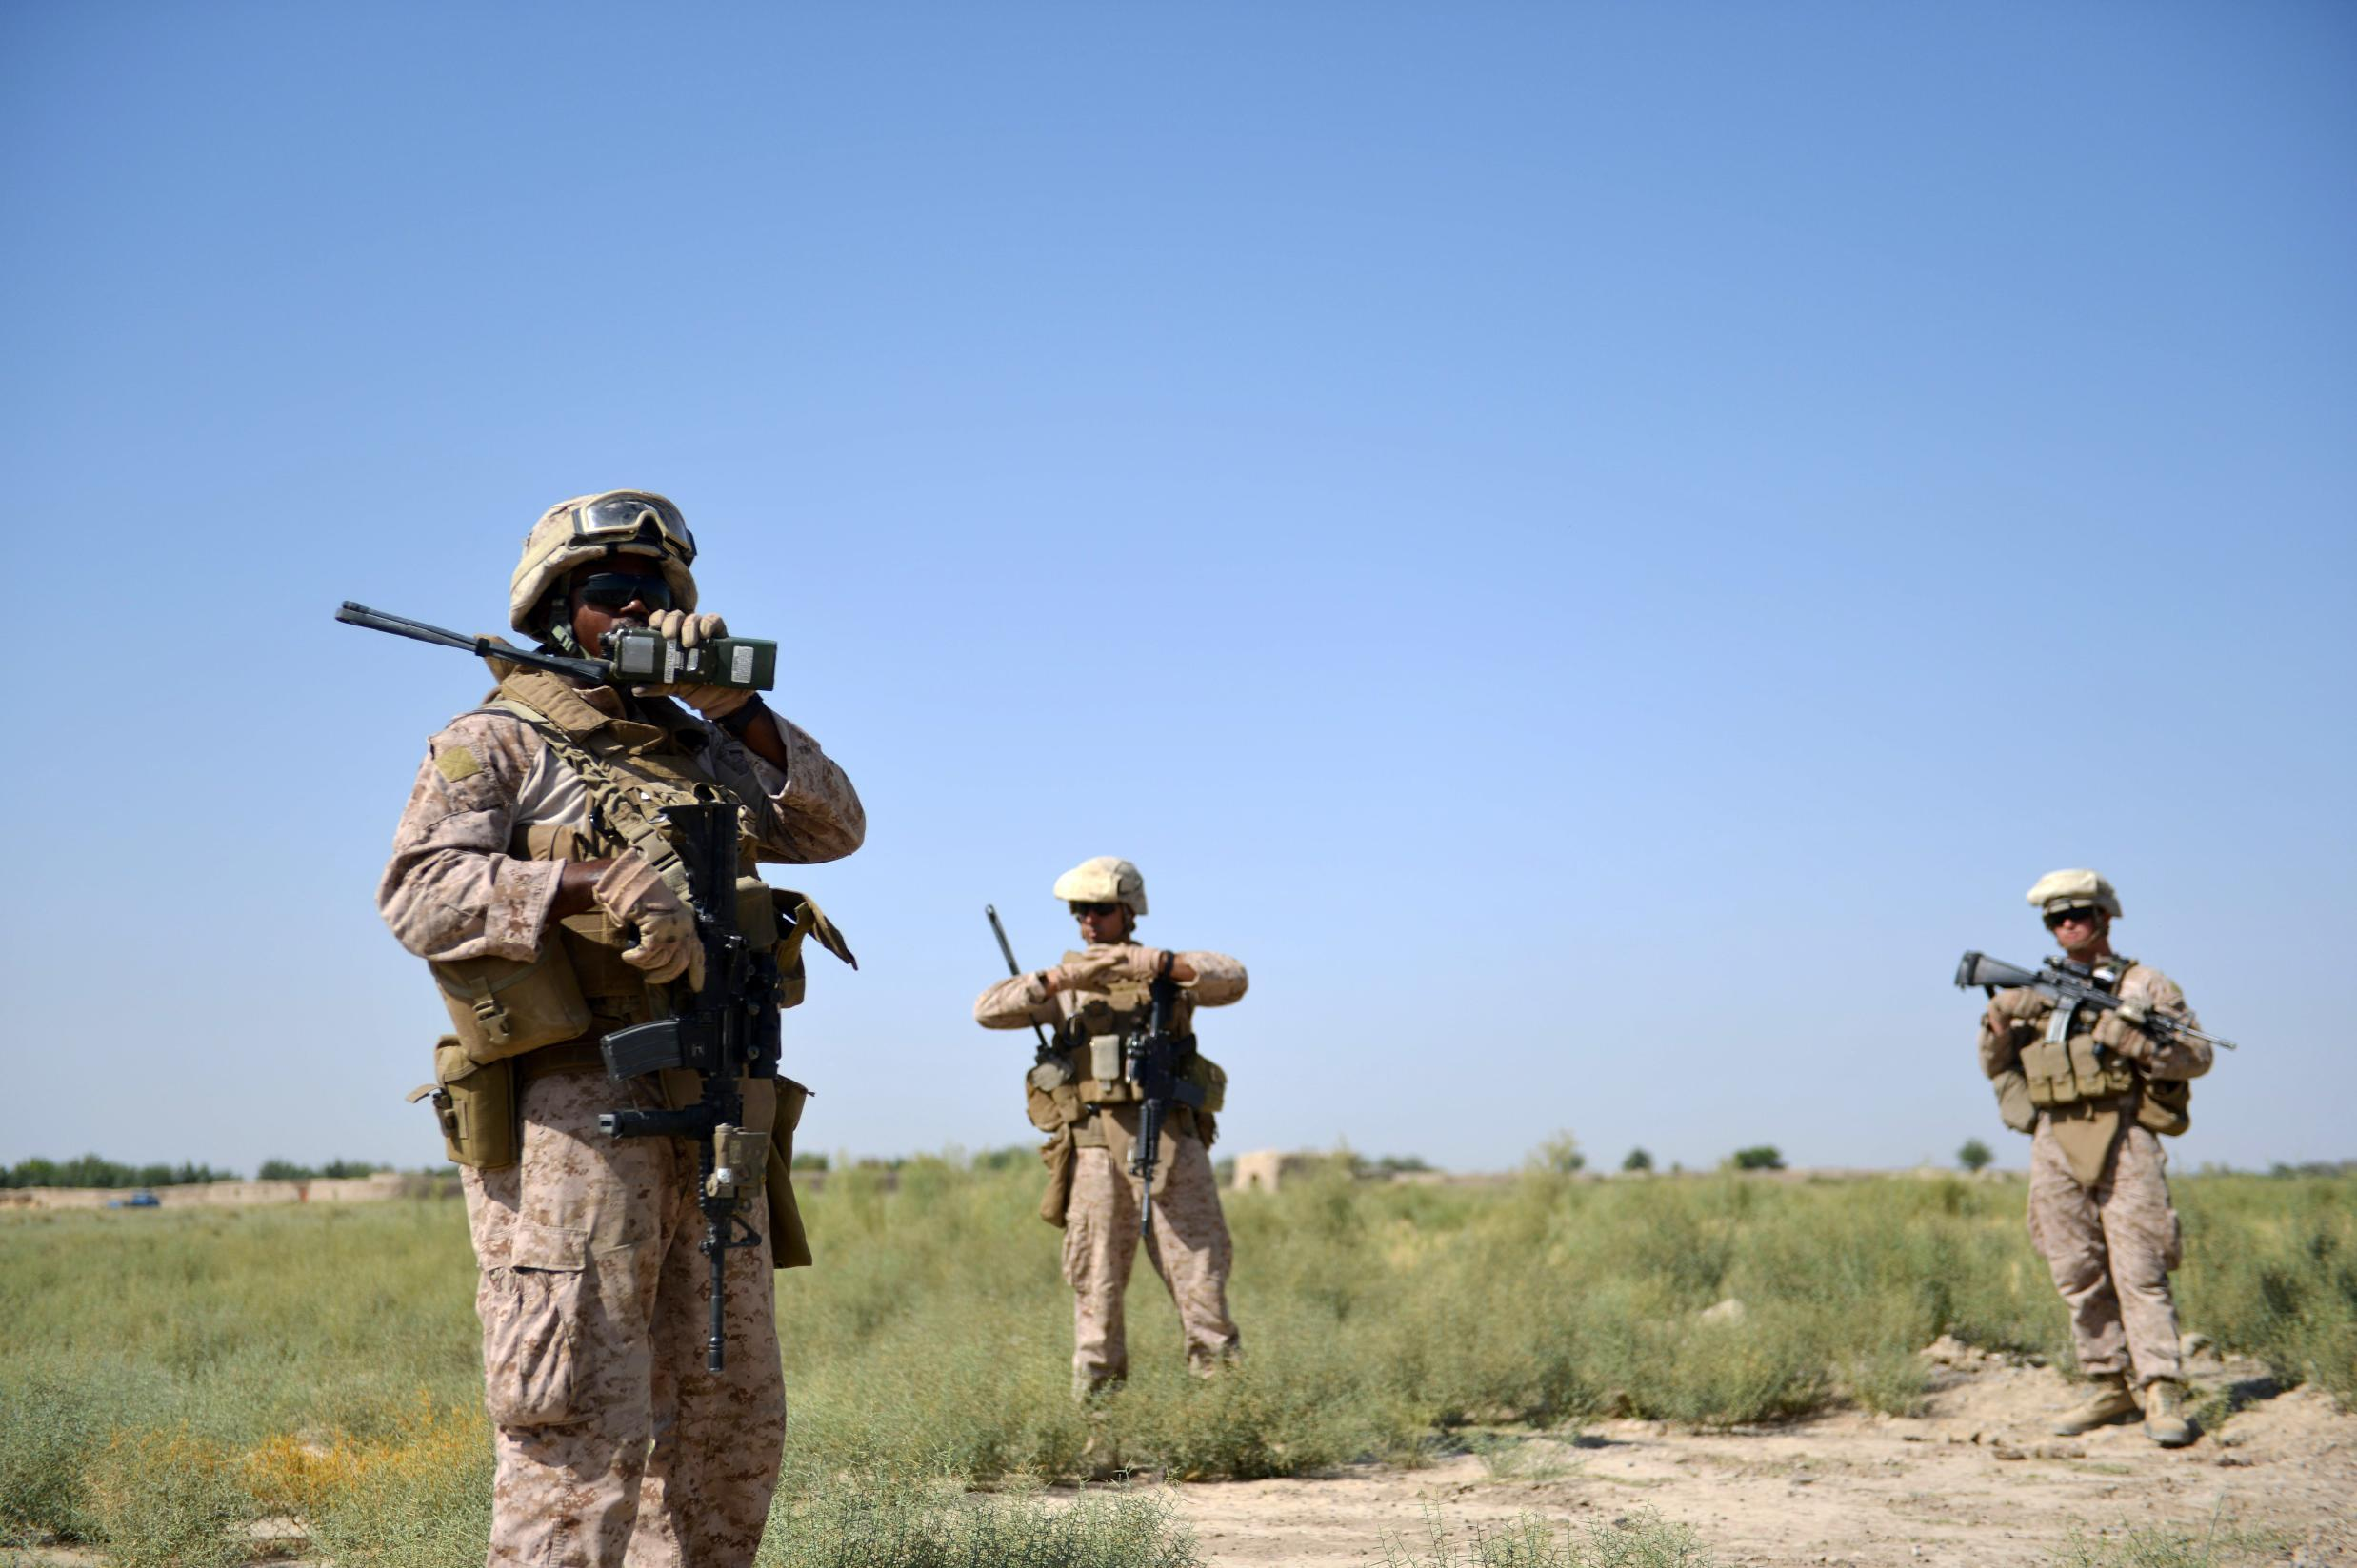 US Marines from Kilo Company of the 3rd Battalion 8th Marines Regiment conduct a patrol in Garmser, Helmand Province on June 29, 2012